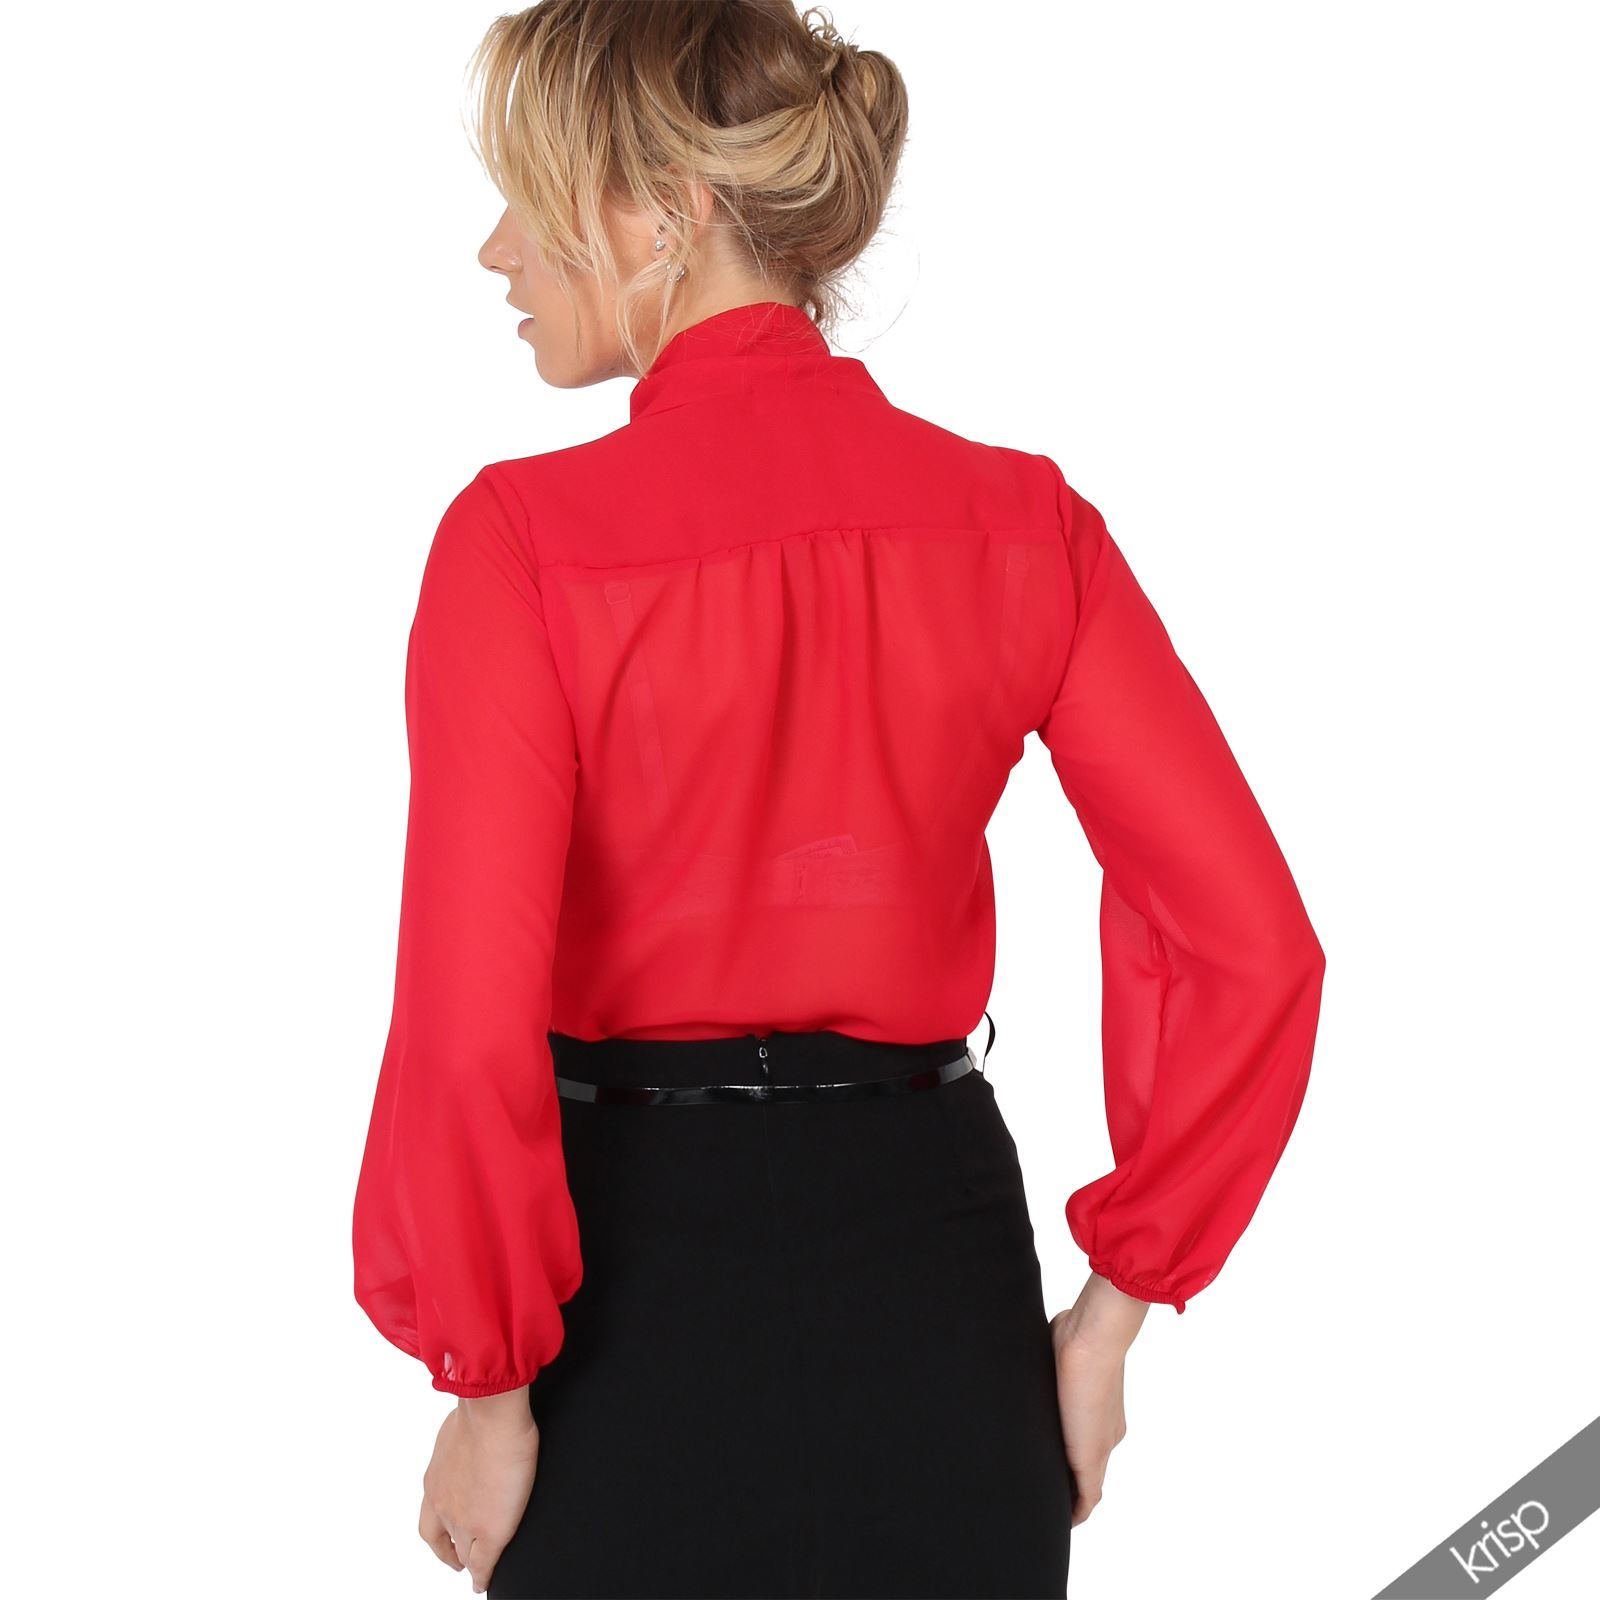 Womens-Ladies-Chiffon-Blouse-Long-Sleeve-Pussy-Bow-Top-Plain-Shirt-Office-Party thumbnail 16